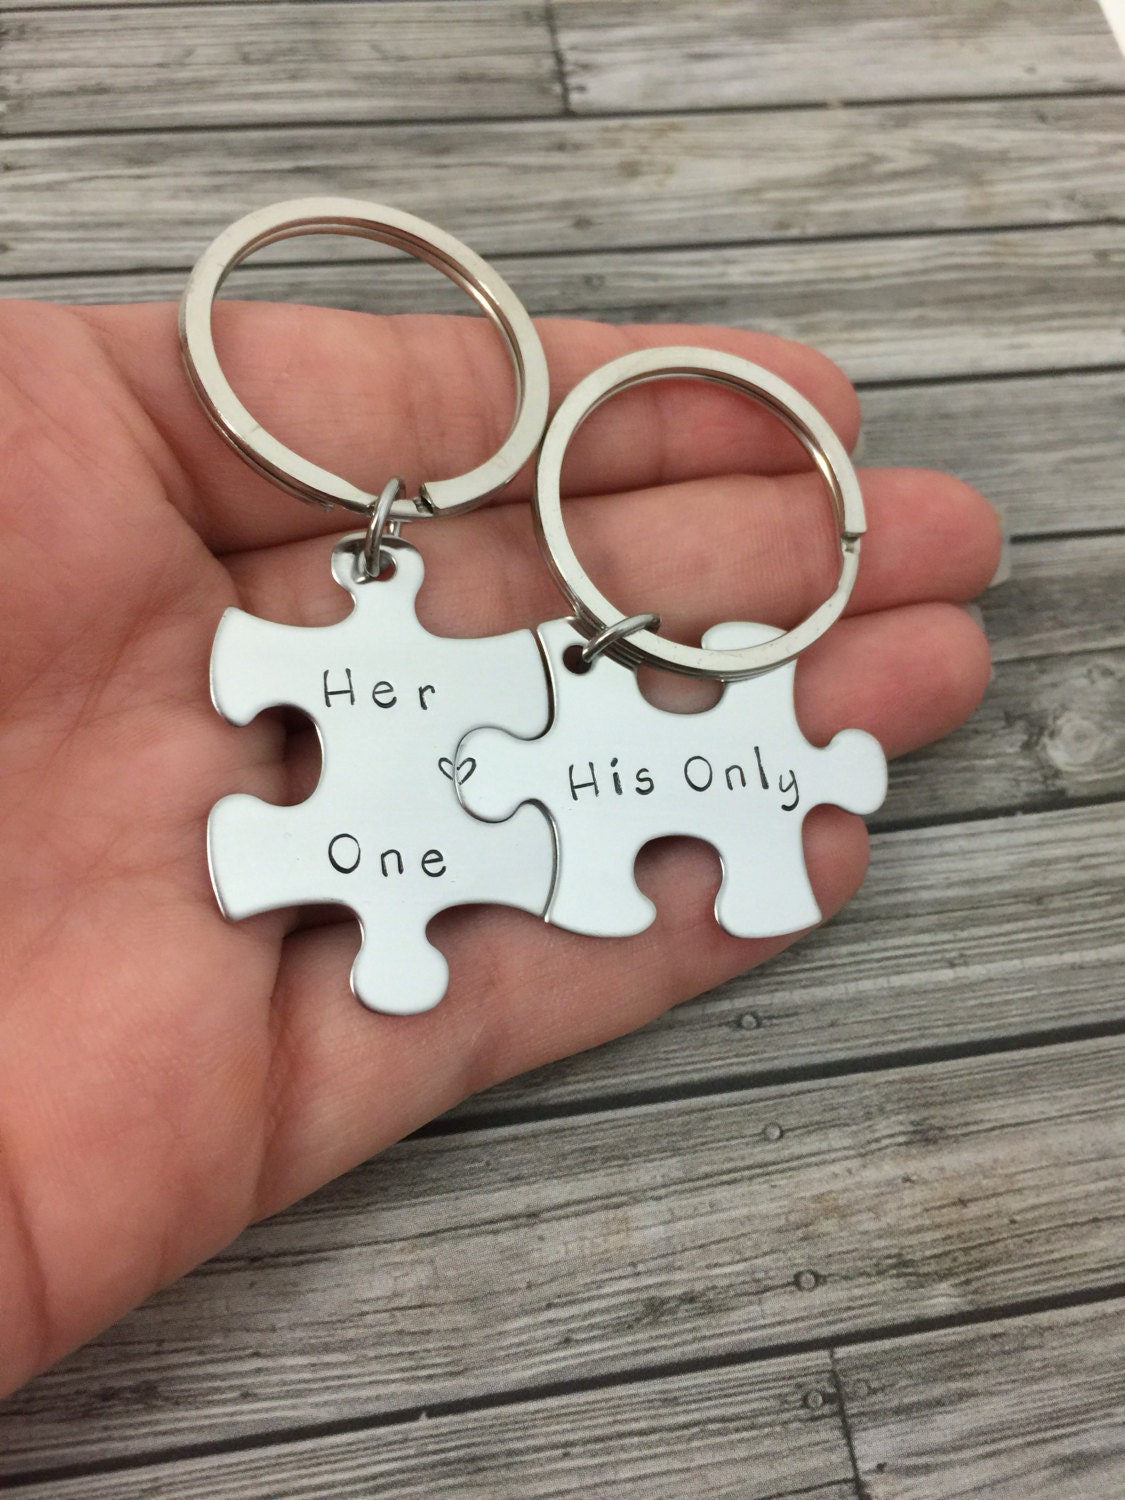 Her One His Only Couples Keychains Puzzle Piece Keychain